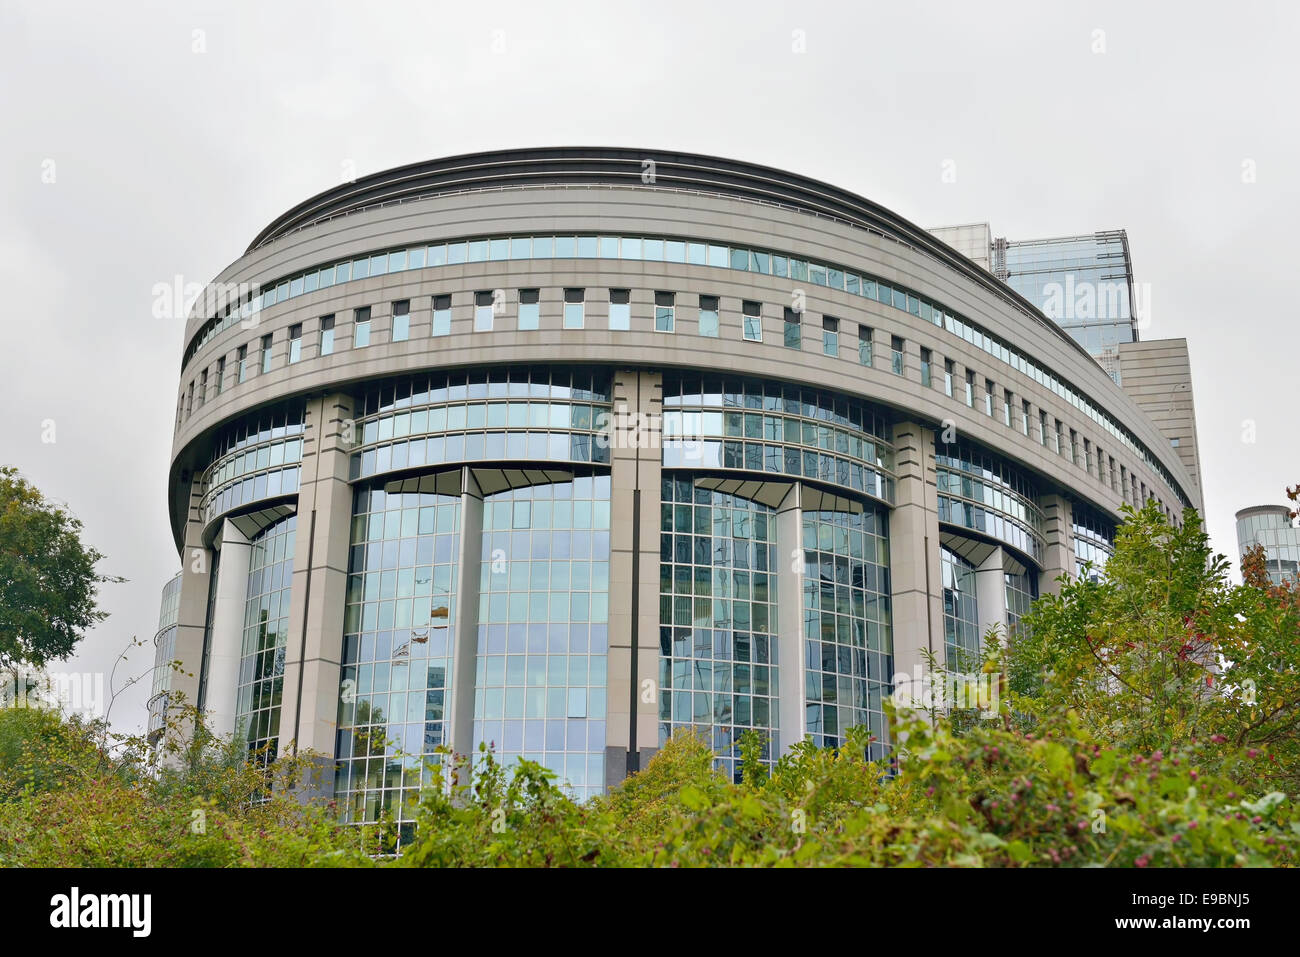 BRUSSELS, BELGIUM-OCTOBER 23, 2014: Modern building of the European Parliament in Brussels - Stock Image